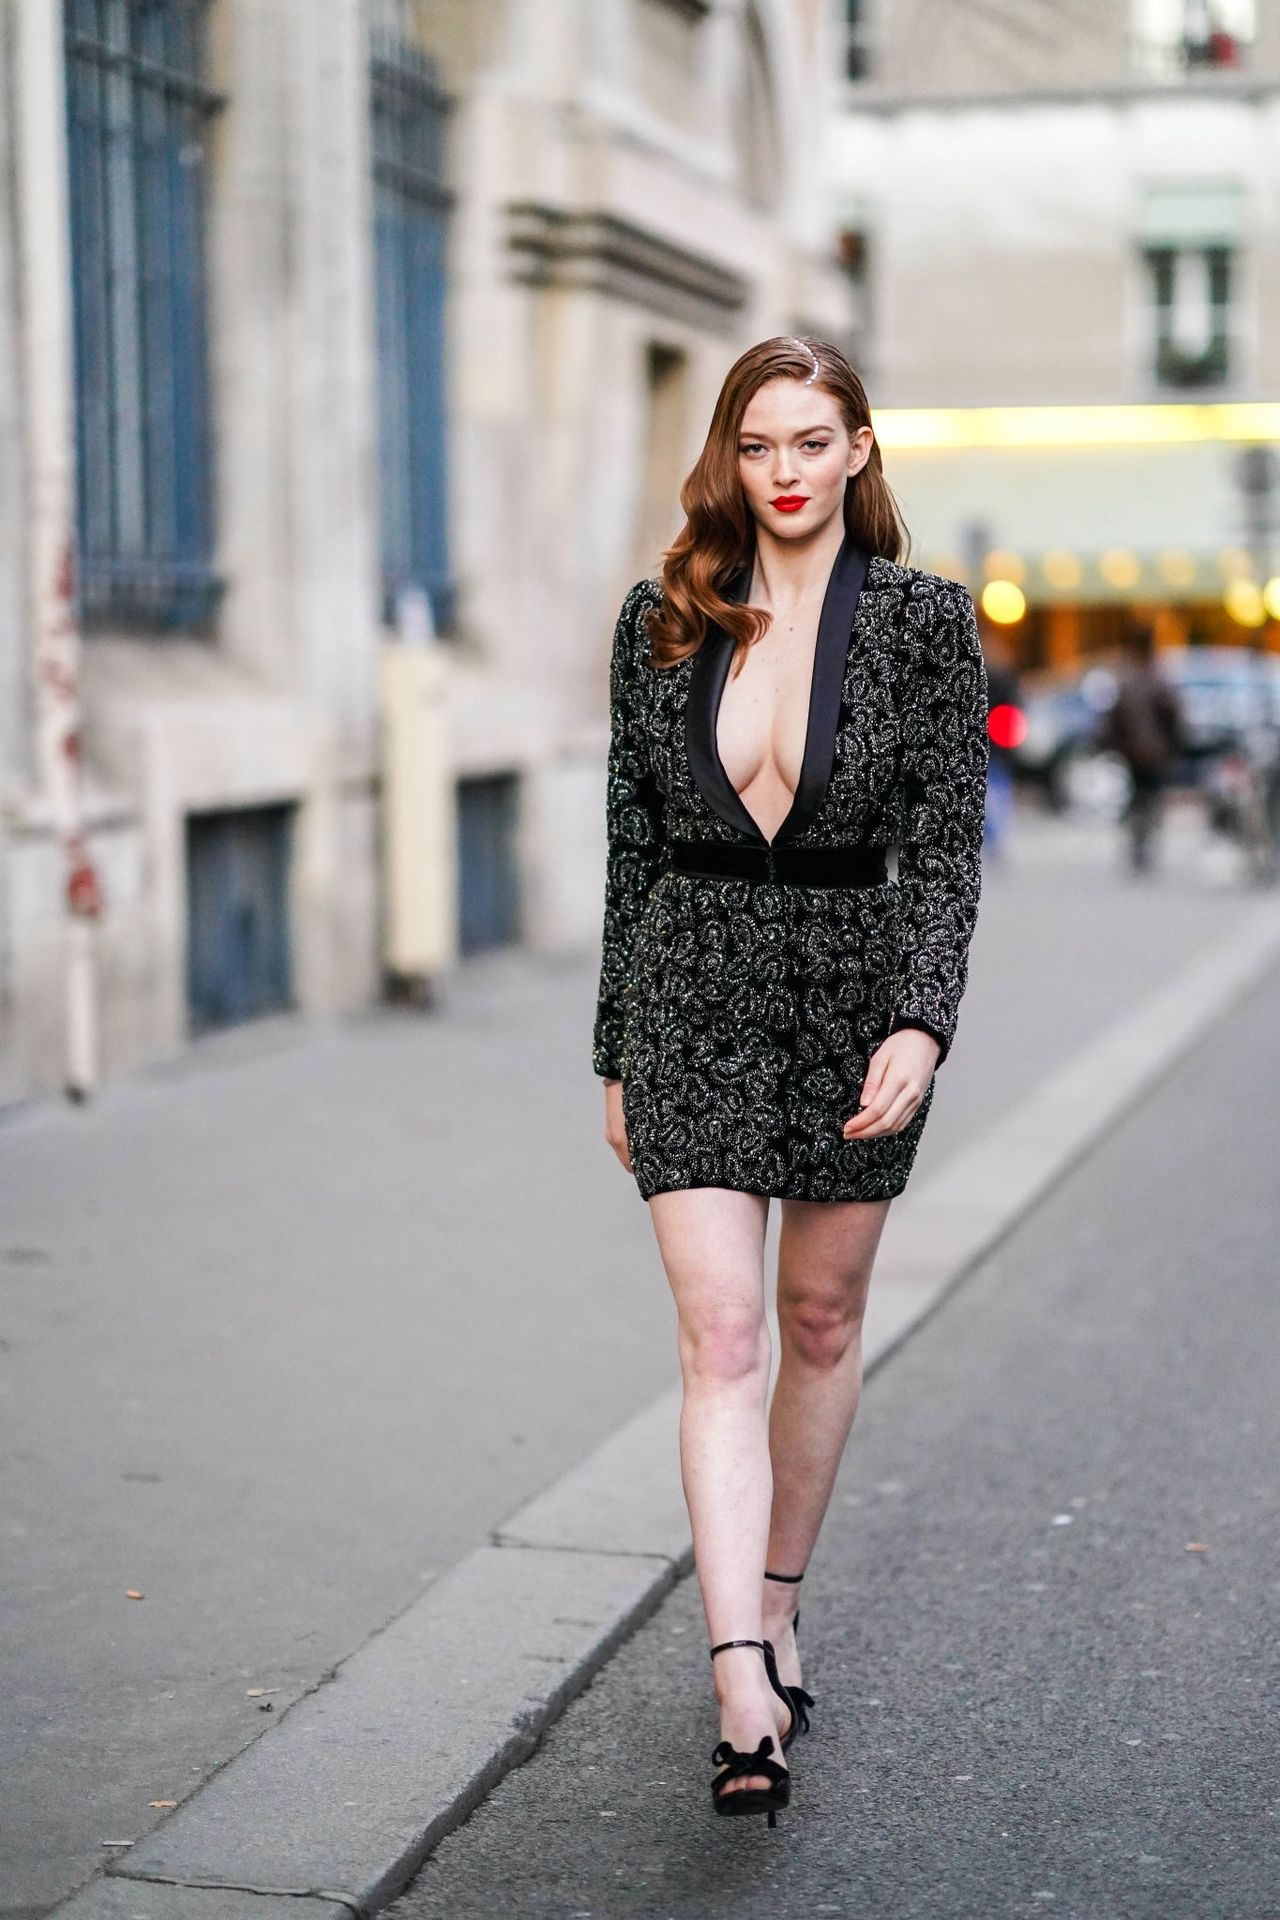 Larsen Thompson Wows With Her Tits At The Fashion Show 0016